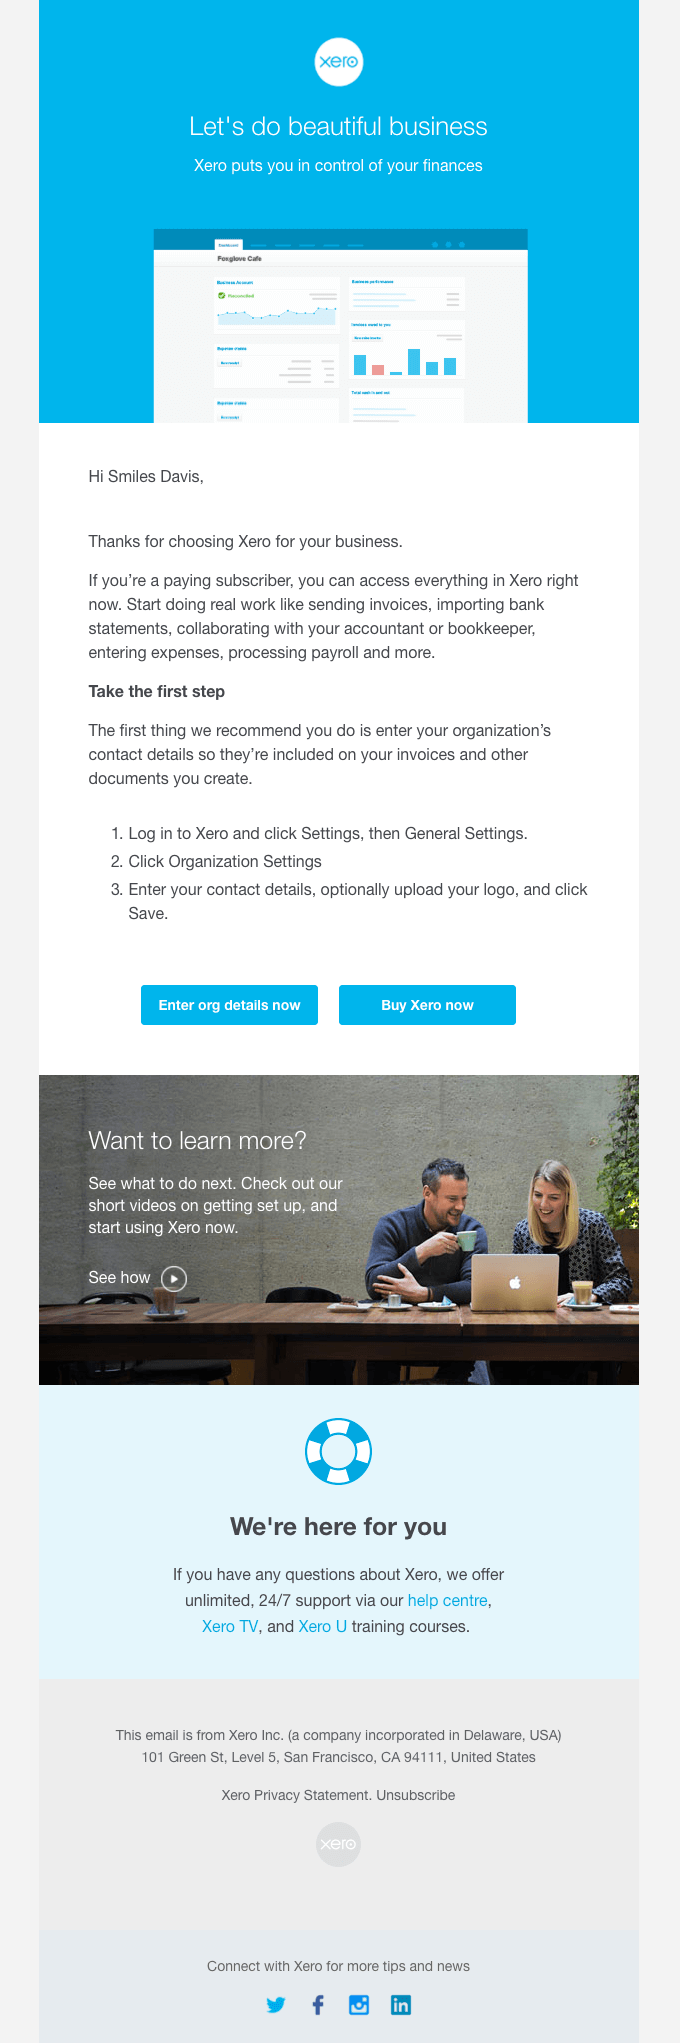 21 High-Performing B2B Email Marketing Examples to \